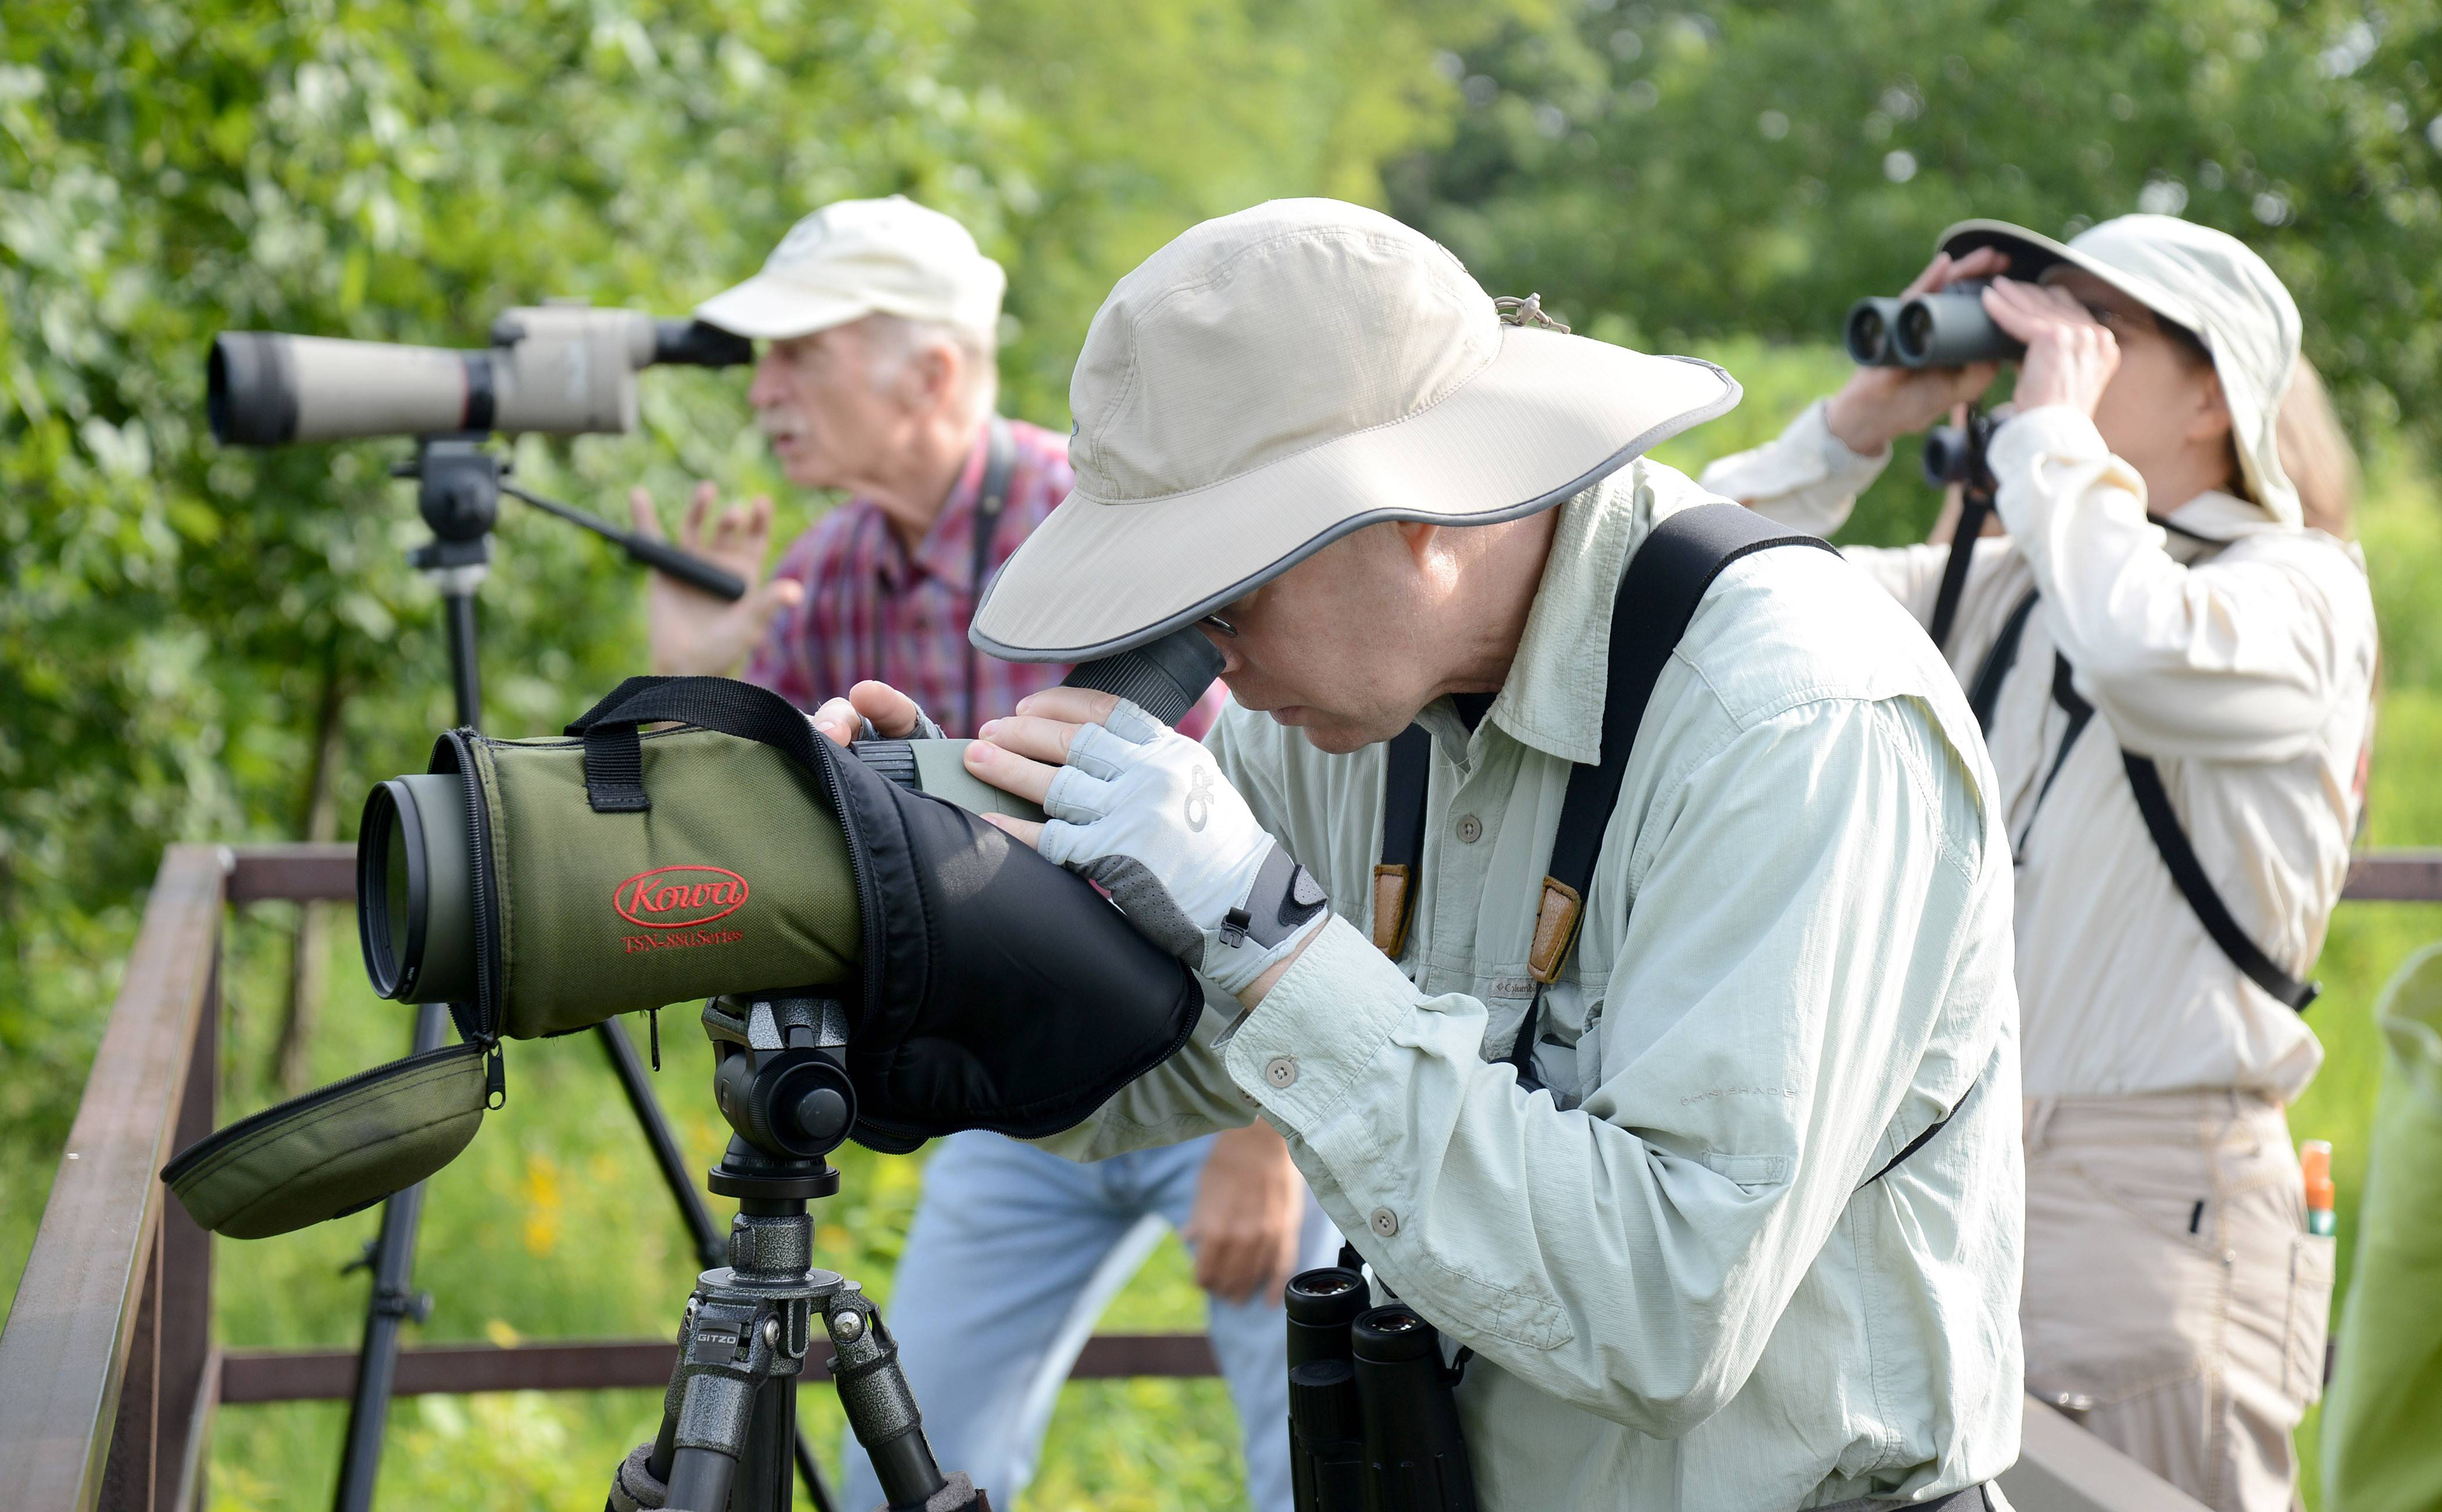 Kane County Audubon Society member Terry Murray of Aurora, center, uses a scope to scan Nelson Lake with Phil Doncheck of Rockford, left, and Theresa LeCompte, right, of Aurora, during a bird walk at Dick Young Forest Preserve in Batavia on Saturday. Murray leads walks on the first Saturday of every month starting at 8 a.m.